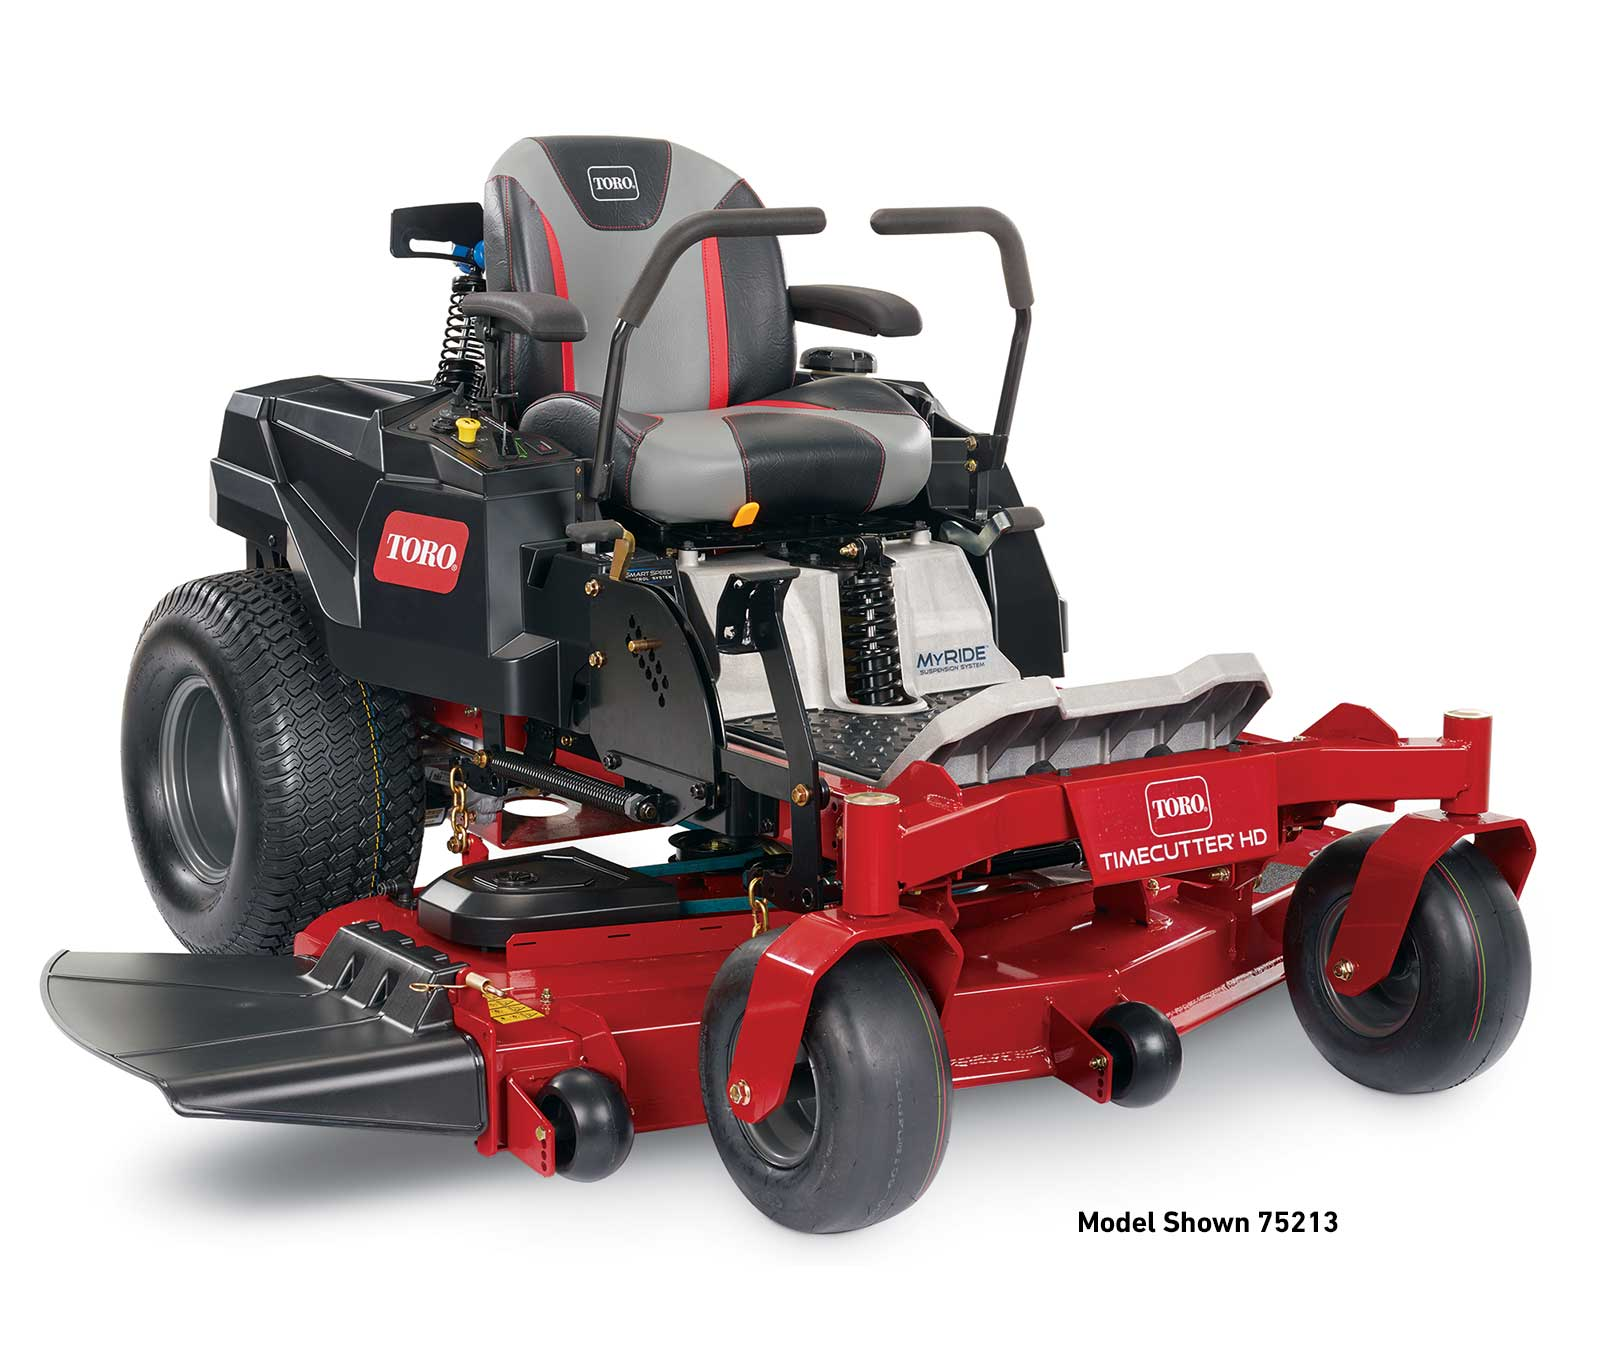 hight resolution of this review is from60 152 cm timecutter hd 75213 toro